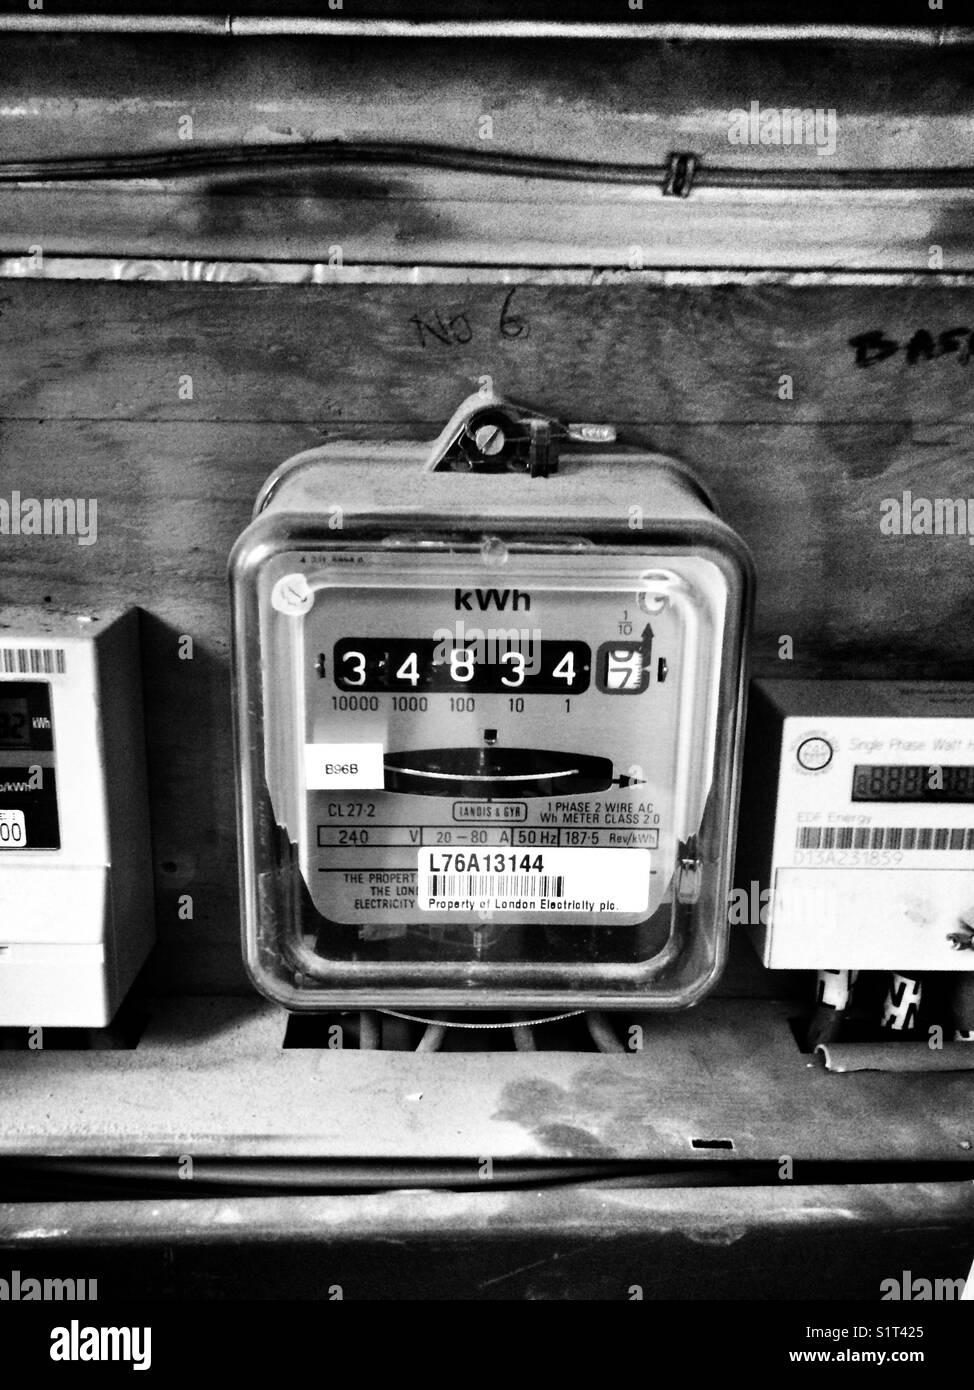 hight resolution of electricity meters in flat complex stock image